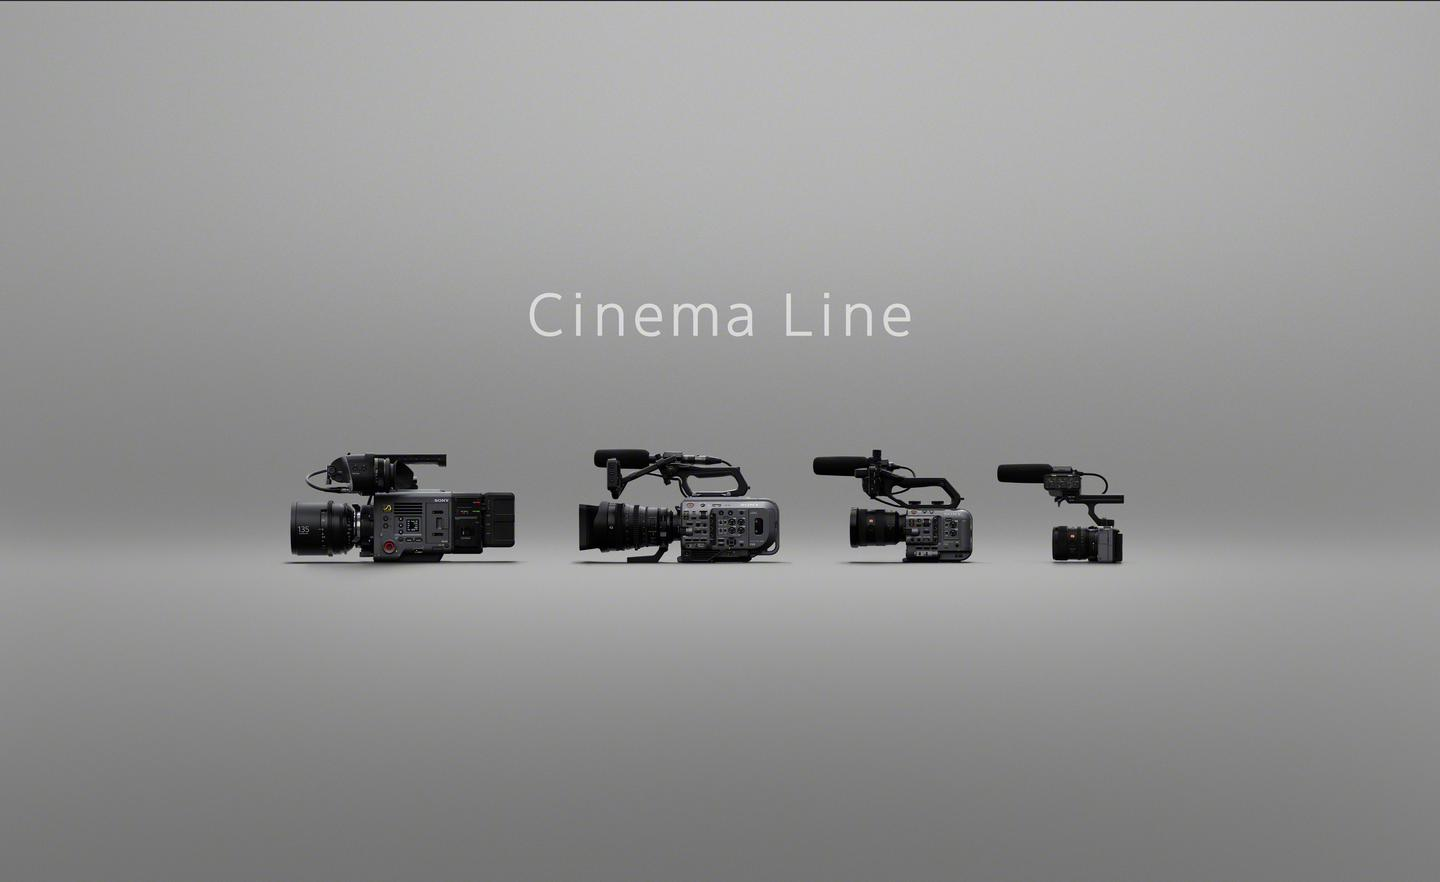 The FX3 (far right) is the entry level member of Sony's Cinema Line of movie-making cameras